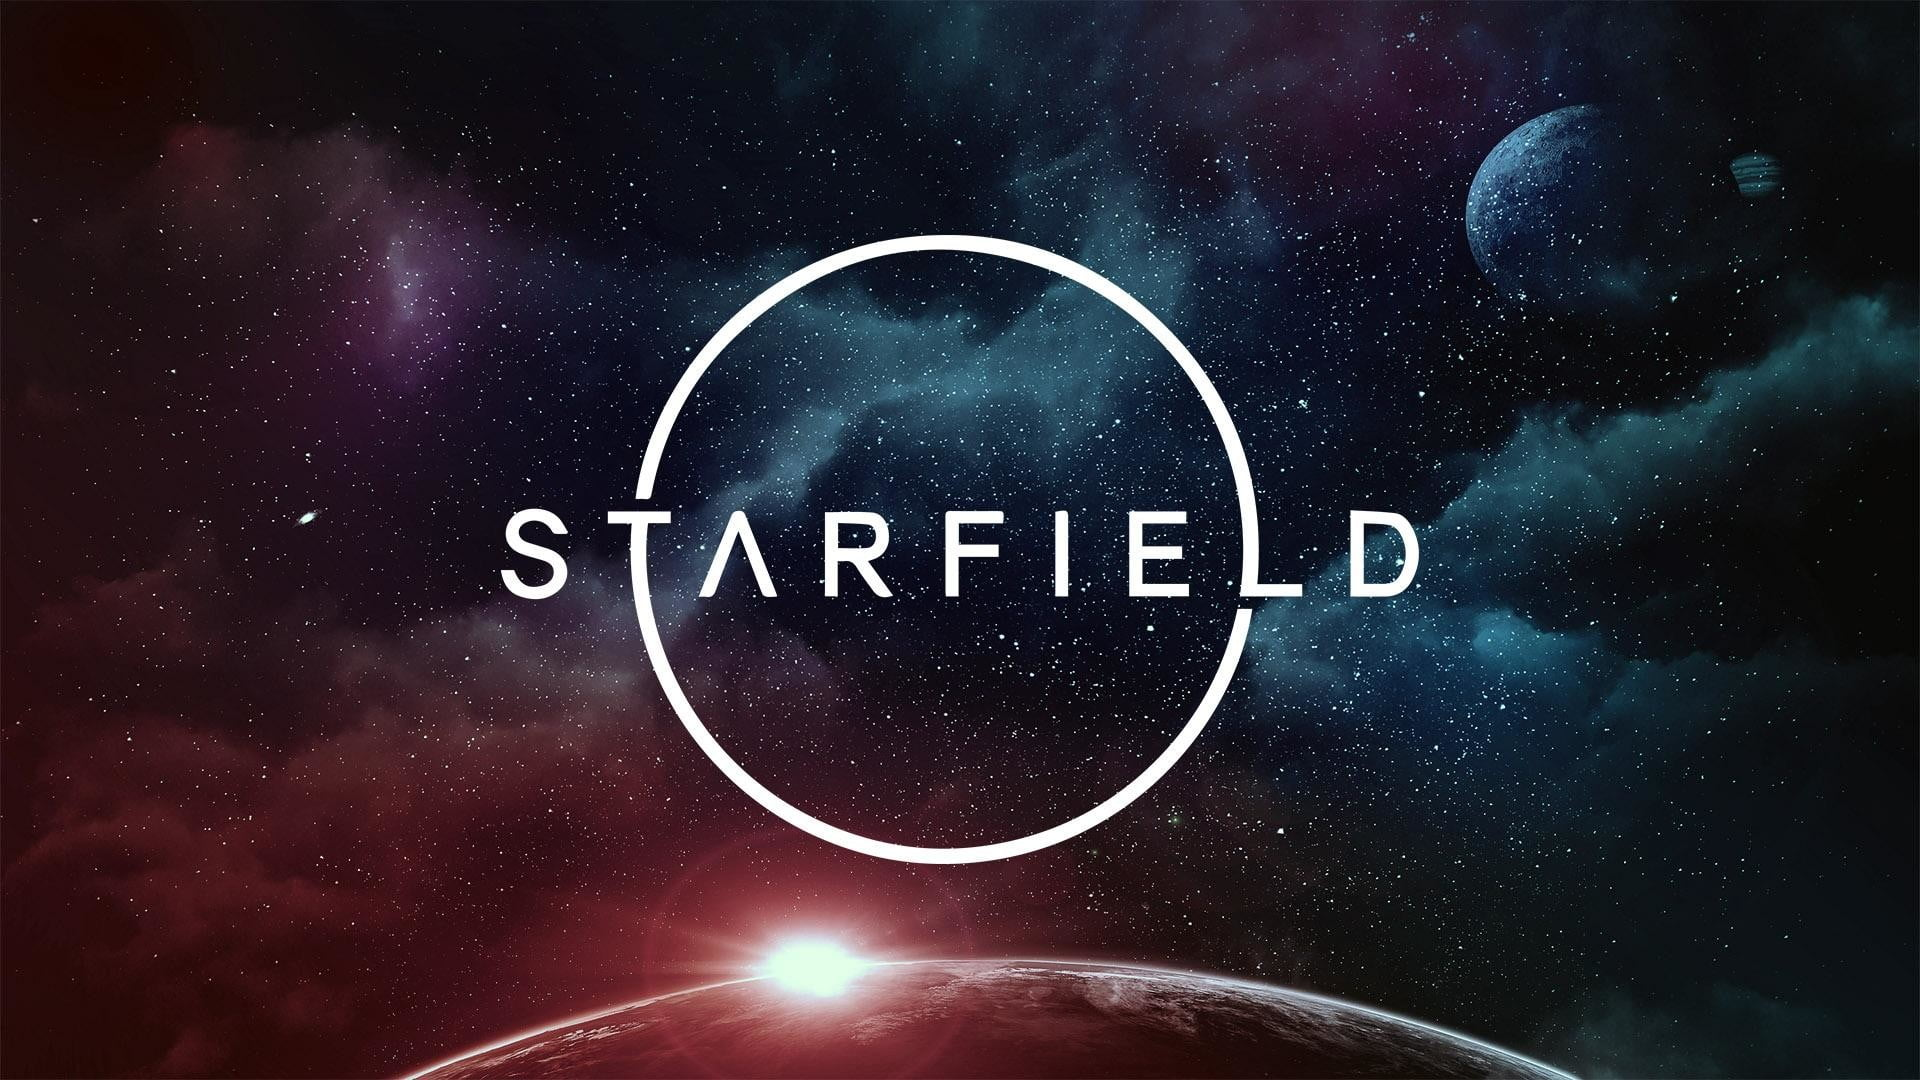 A breathtaking, multicolored, space vista showcasing the logo for upcoming Bethesda RPG Starfield.